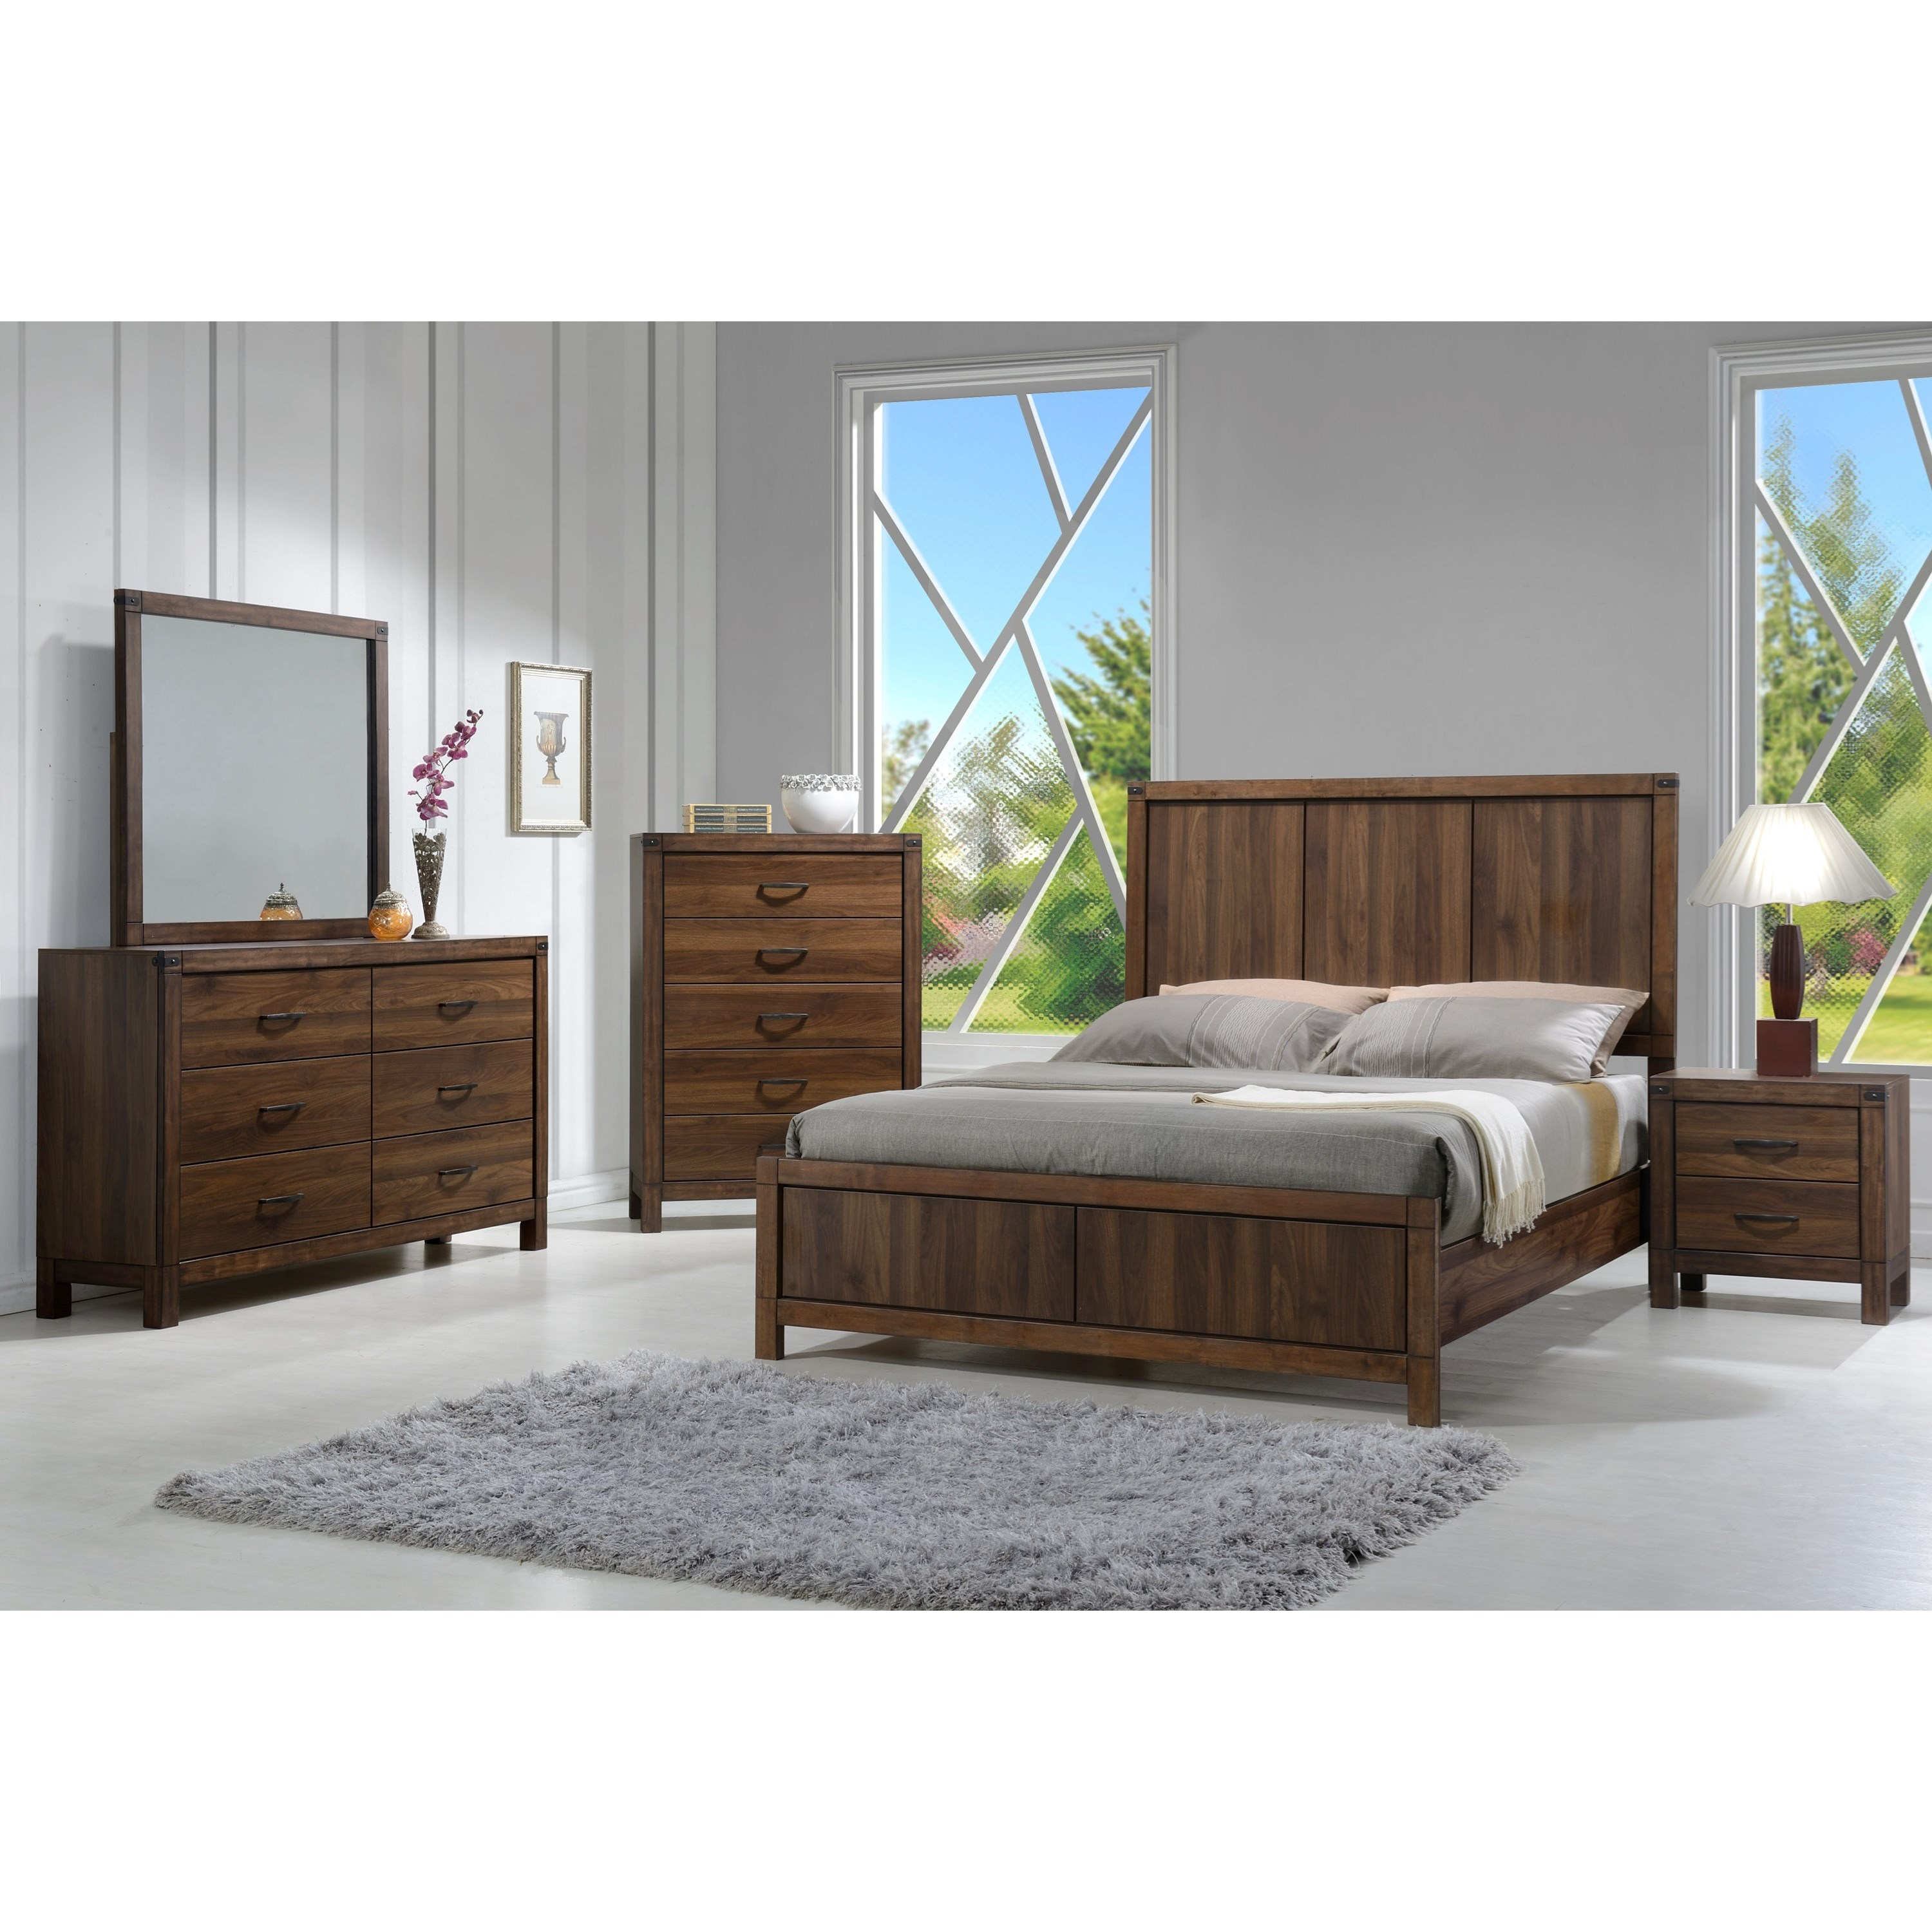 Belmont King Bedroom Group by Crown Mark at Northeast Factory Direct